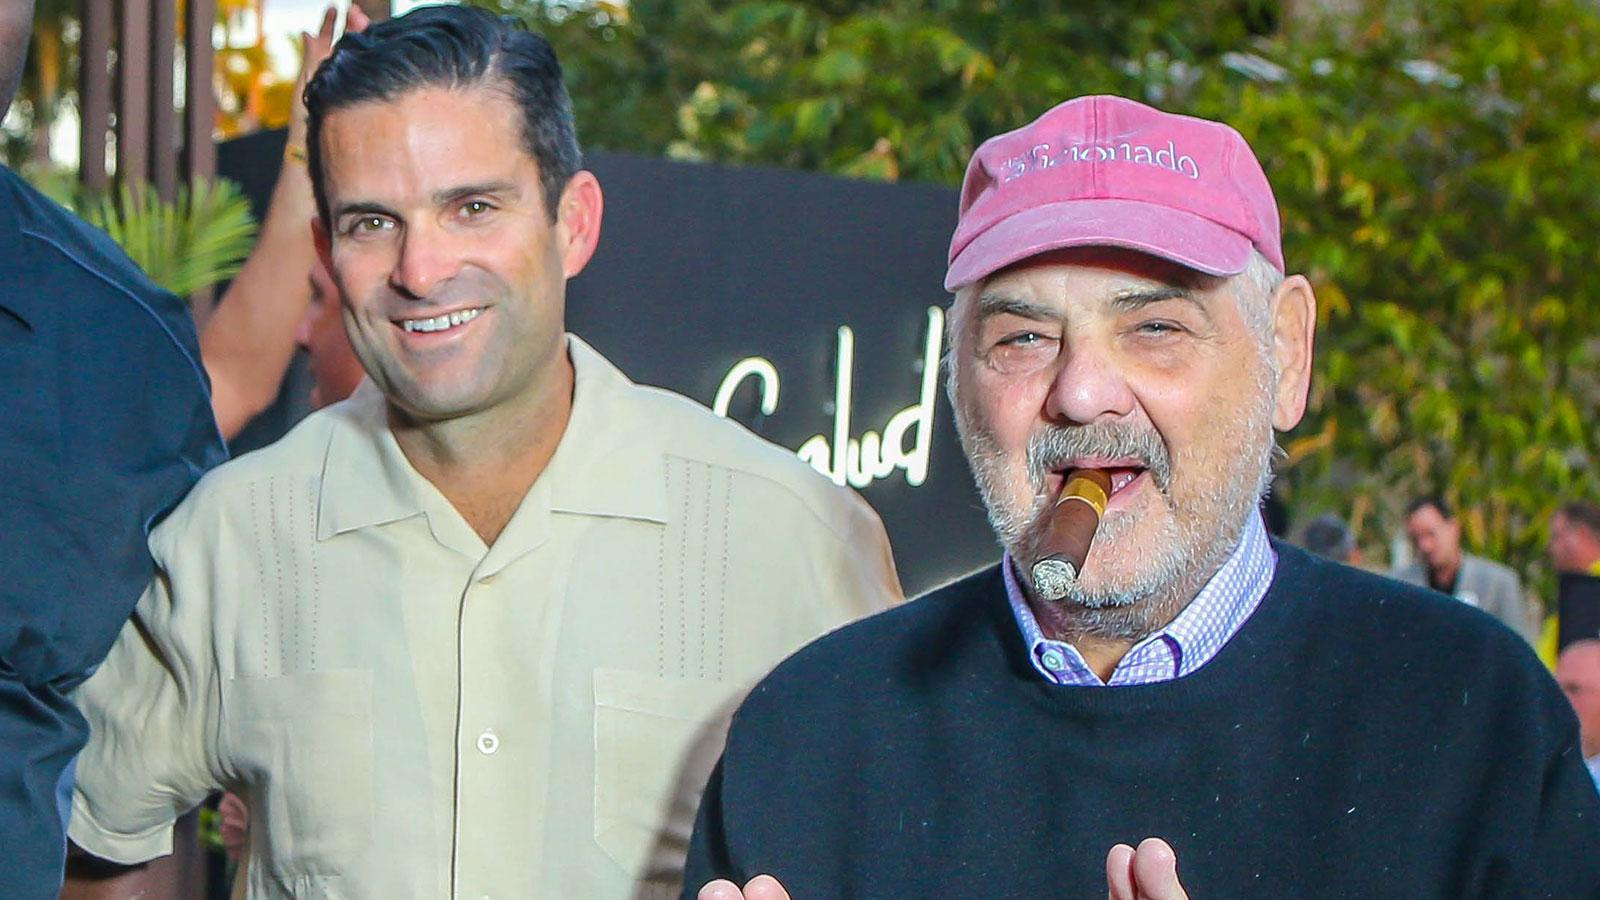 University of Miami football head coach Manny Diaz with Marvin R. Shanken, editor and publisher of Cigar Aficionado.